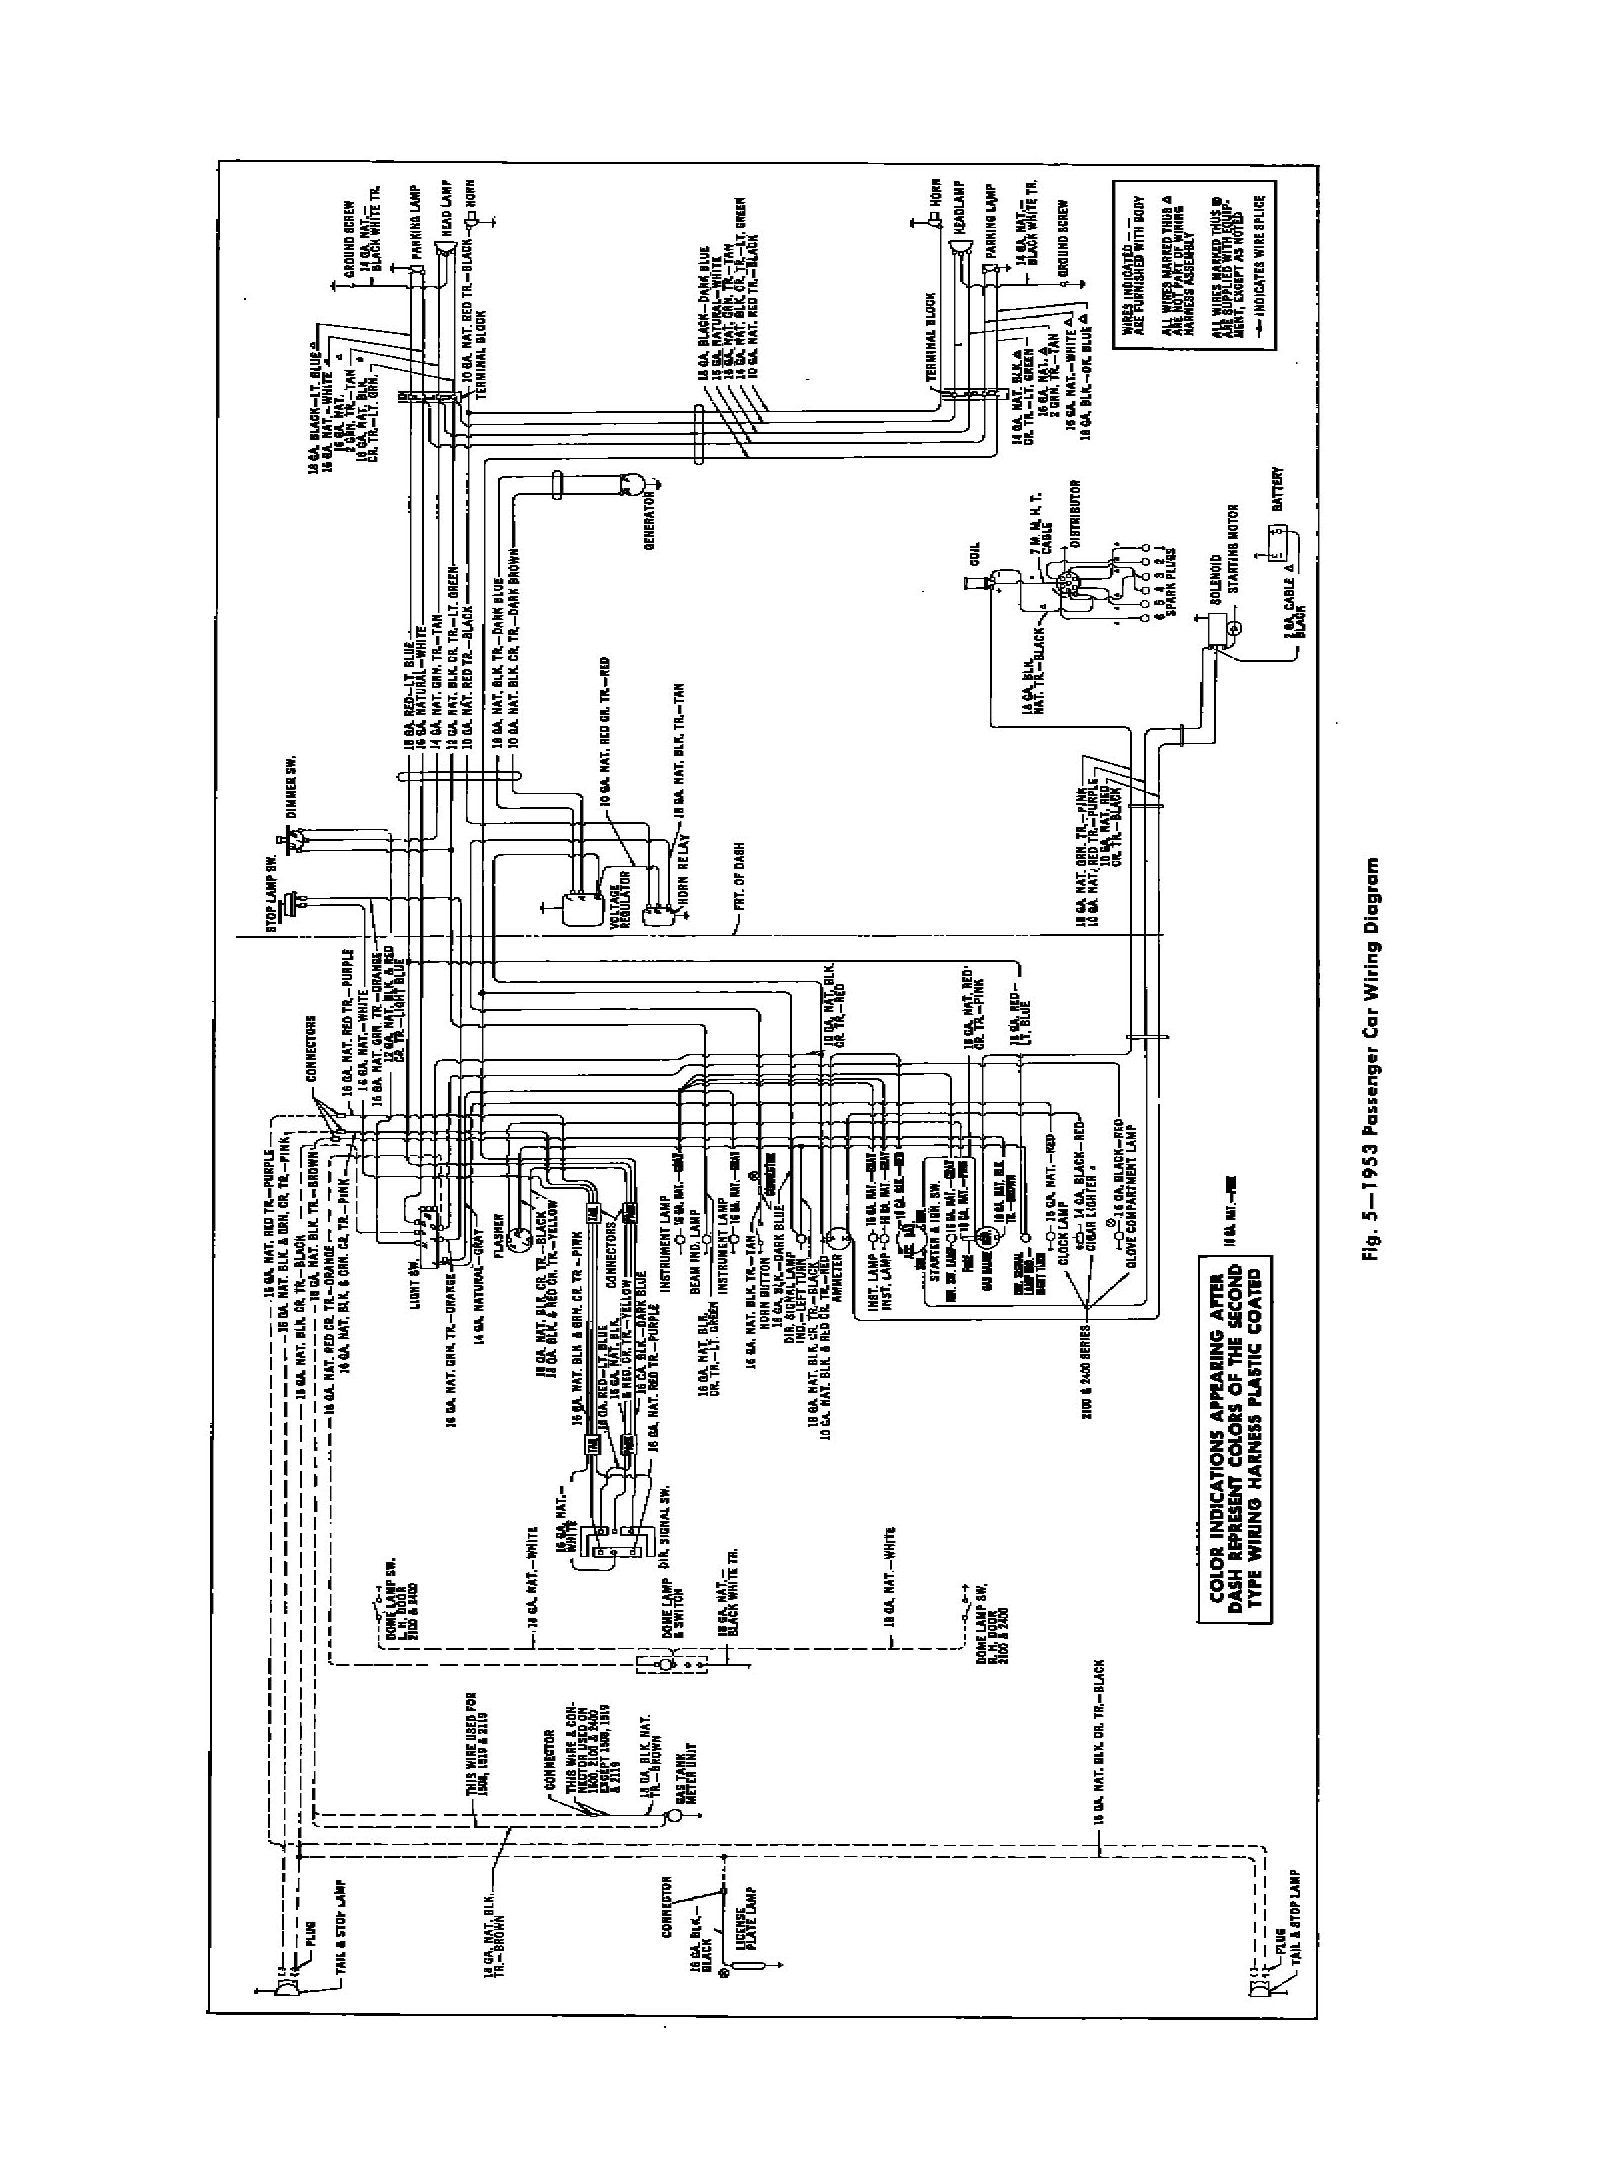 1953 chevy truck wiring diagram honeywell frost thermostat 53 chevrolet bel air